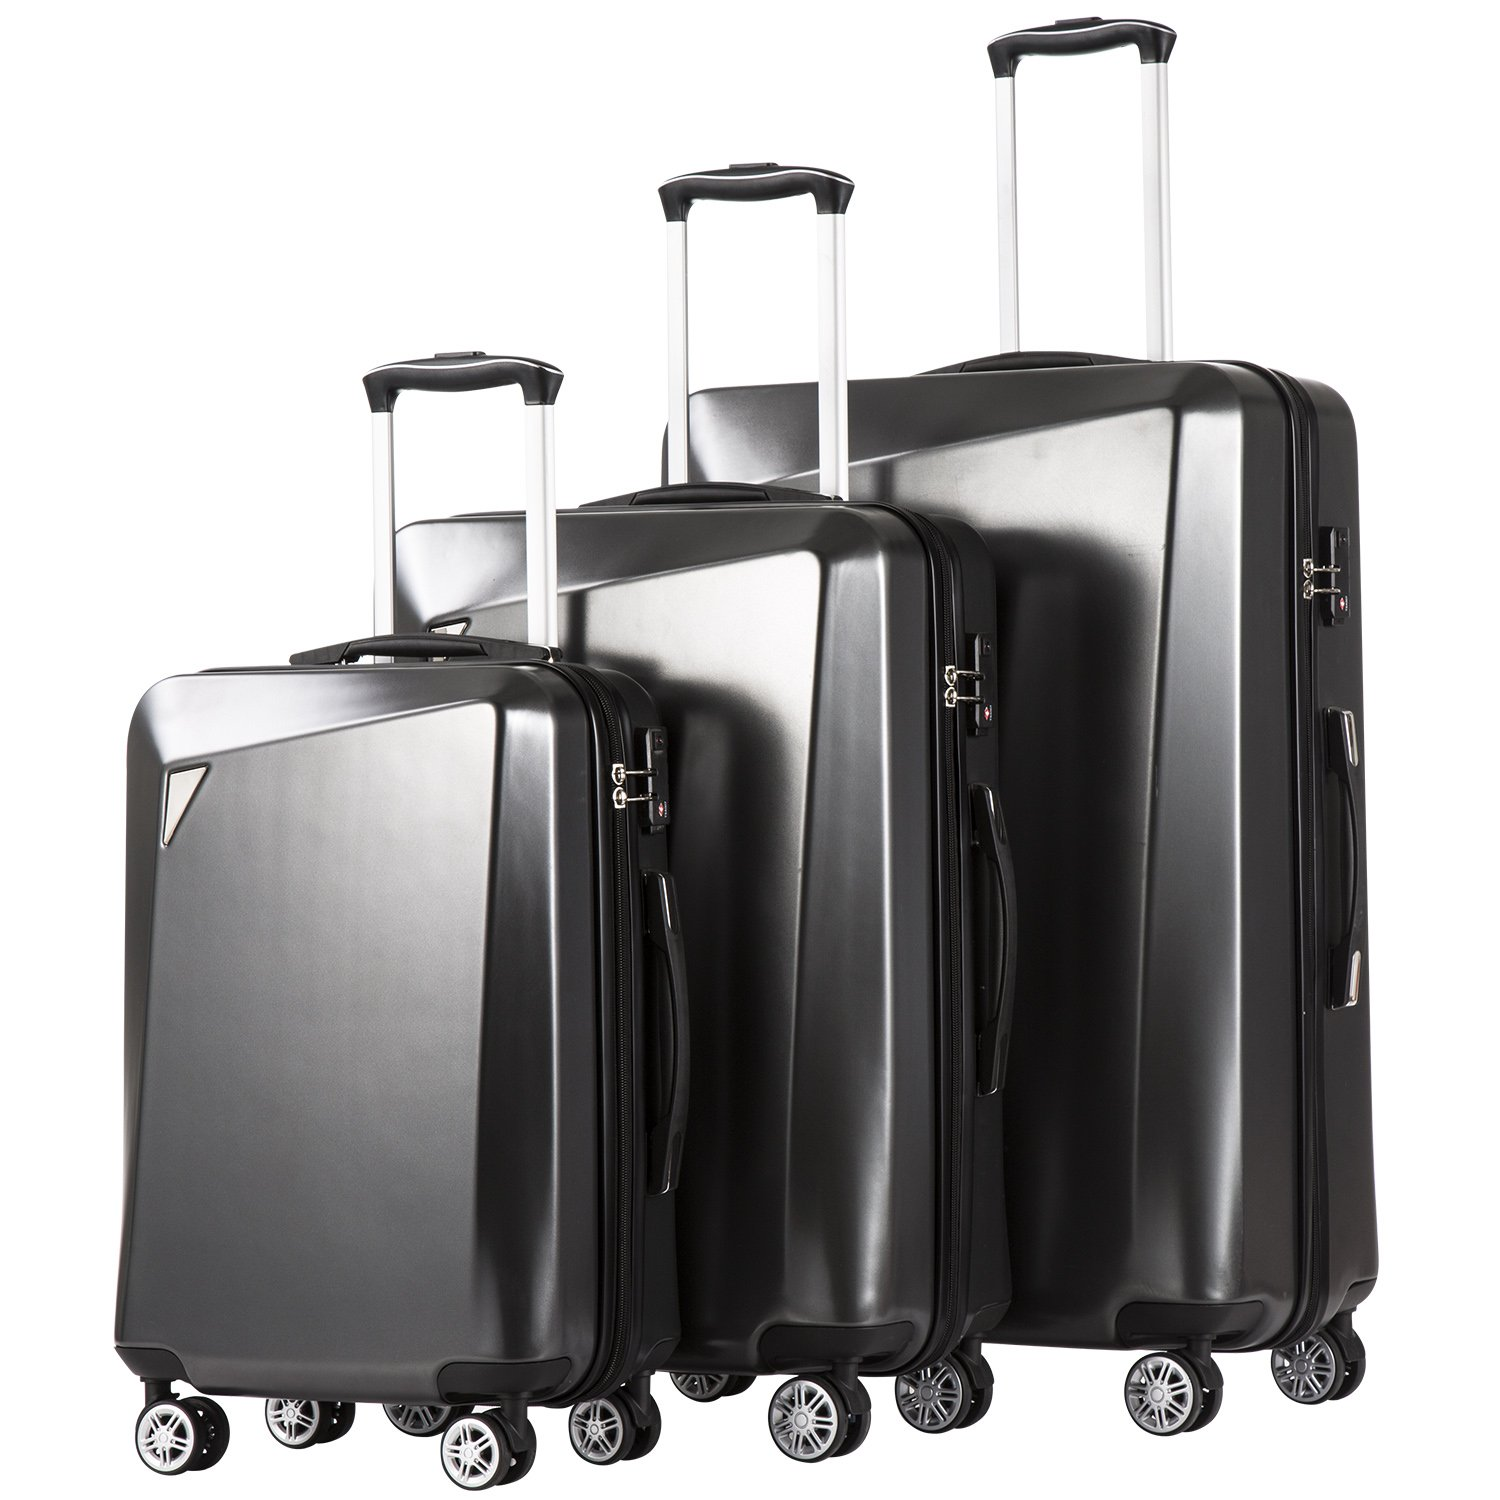 Coolife Luggage 3 Piece Sets PC+ABS Spinner Suitcase 20 inch 24 inch 28 inch (dark gray2) by COOLIFE